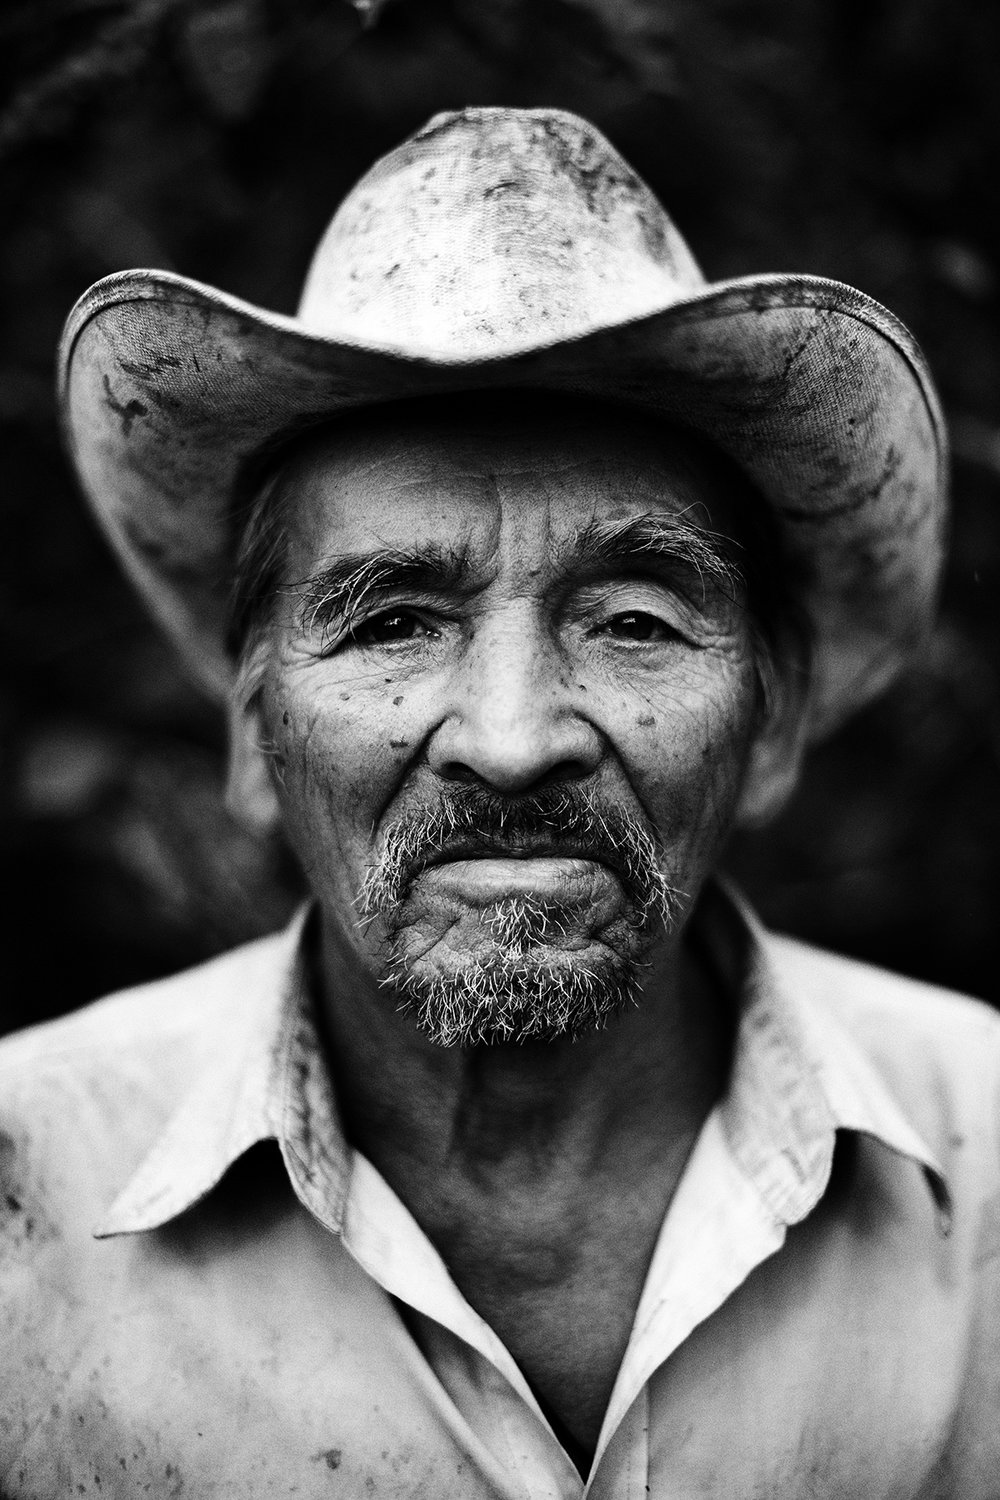 Jinotega, Nicaragua.